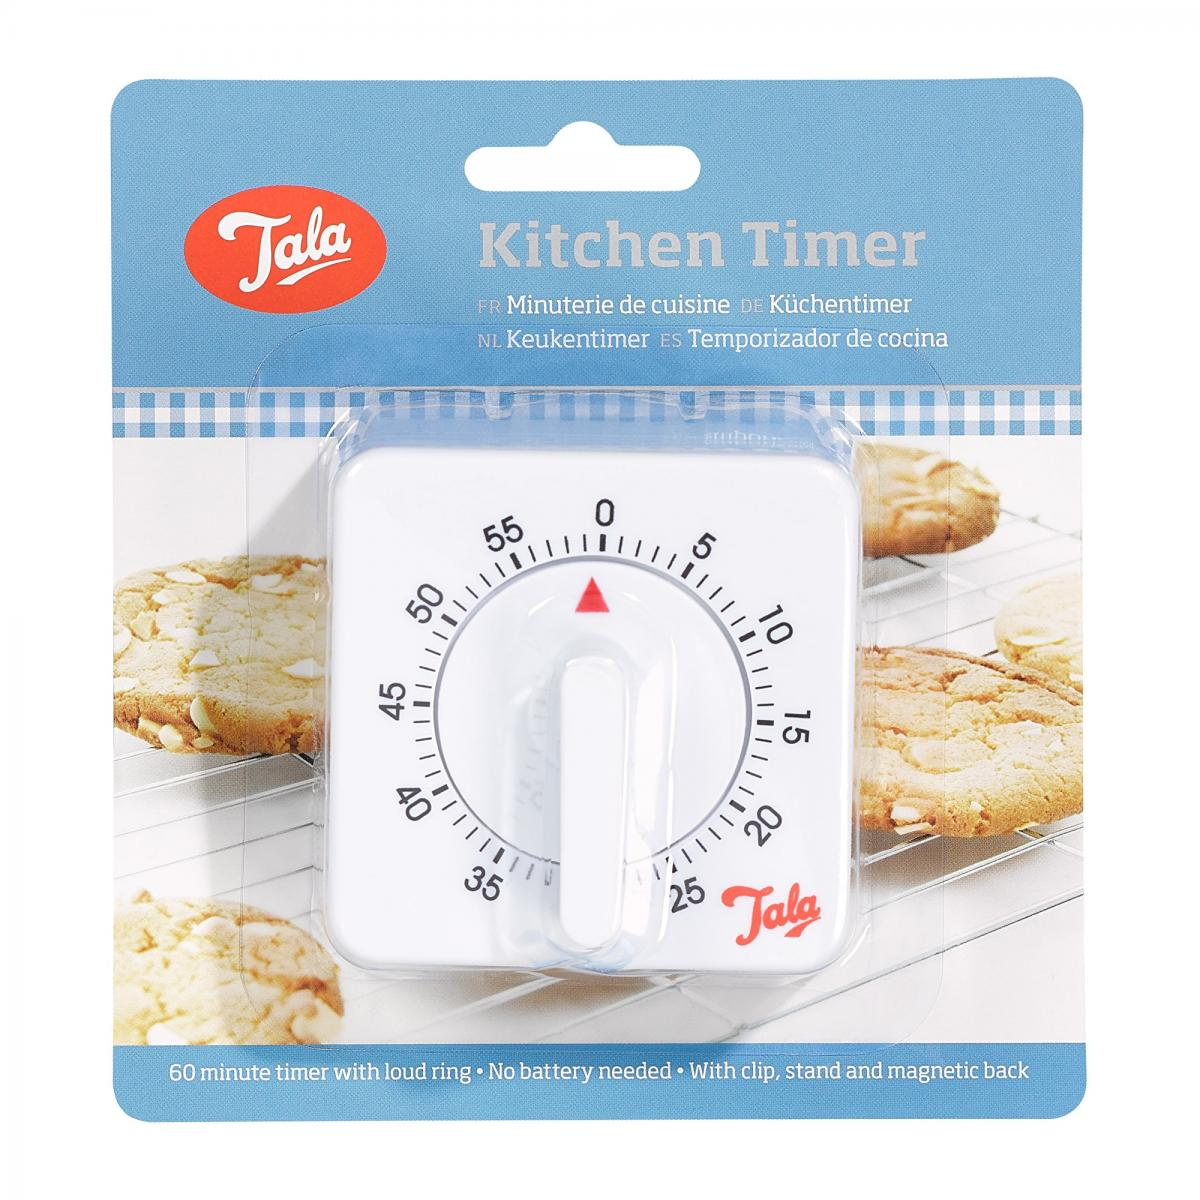 Kitchen Timer – Now Only £3.00